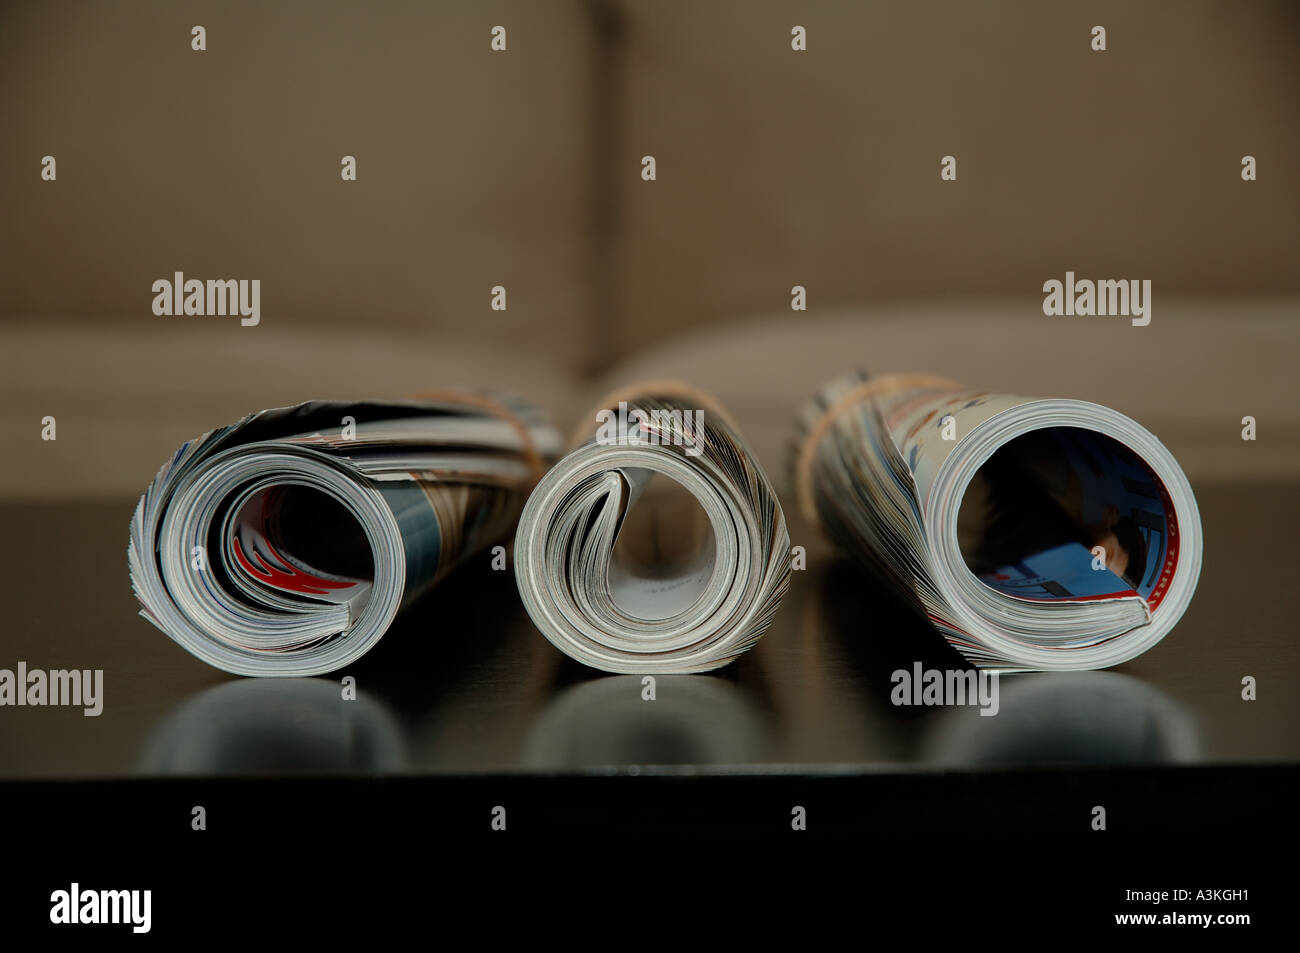 Rolled up magazines over coffee table Stock Photo